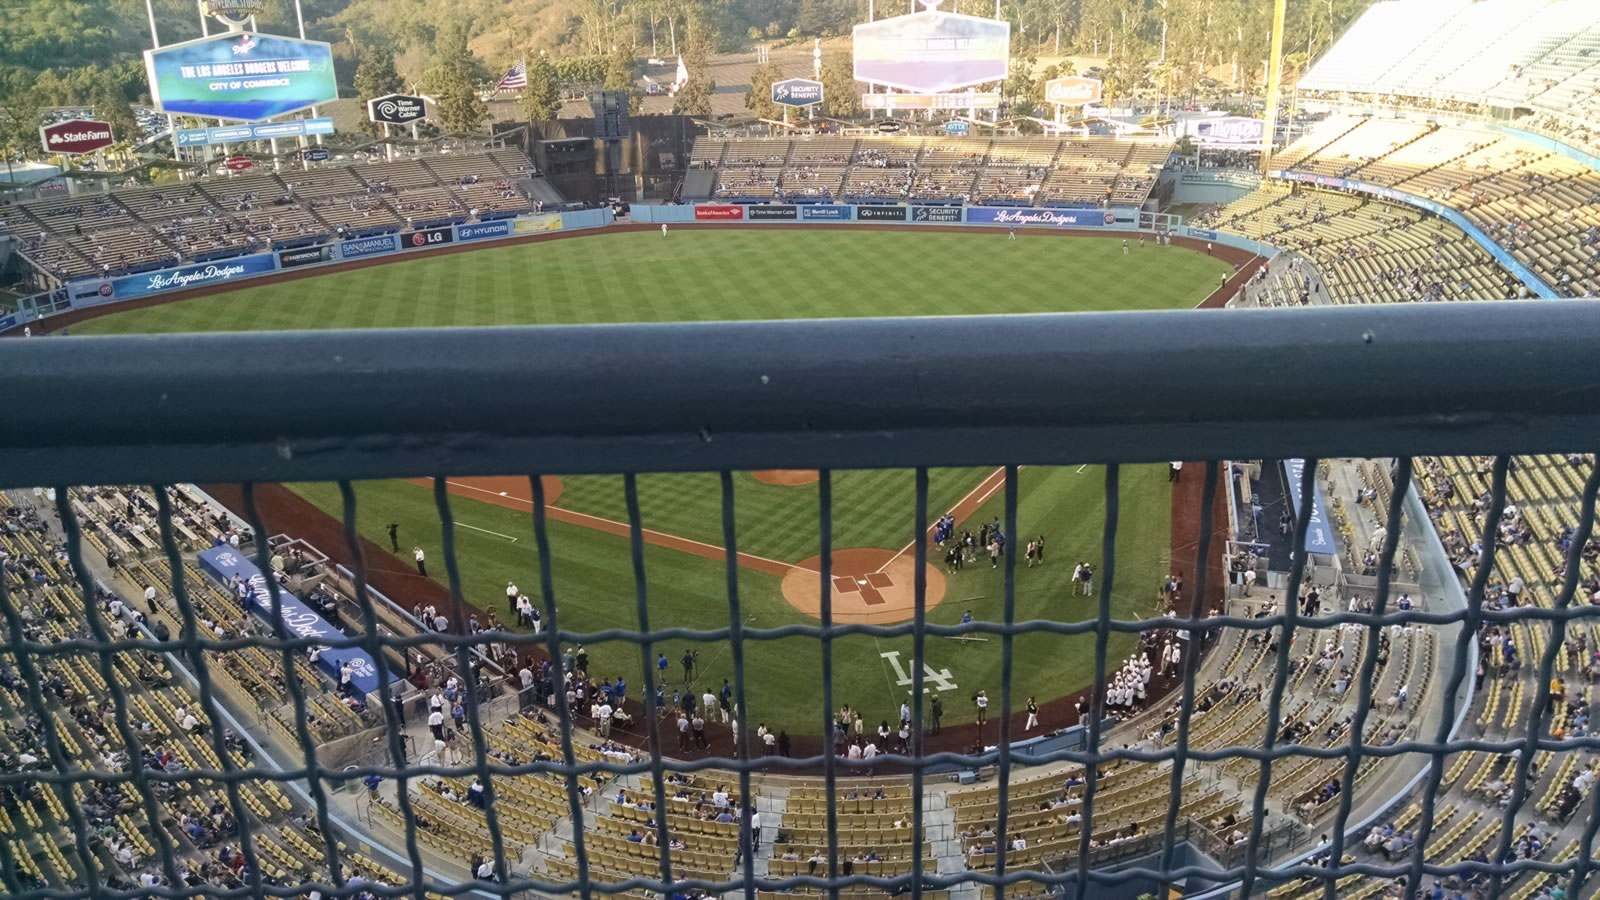 Seat View for Dodger Stadium Top Deck 5, Row A, Seat 5